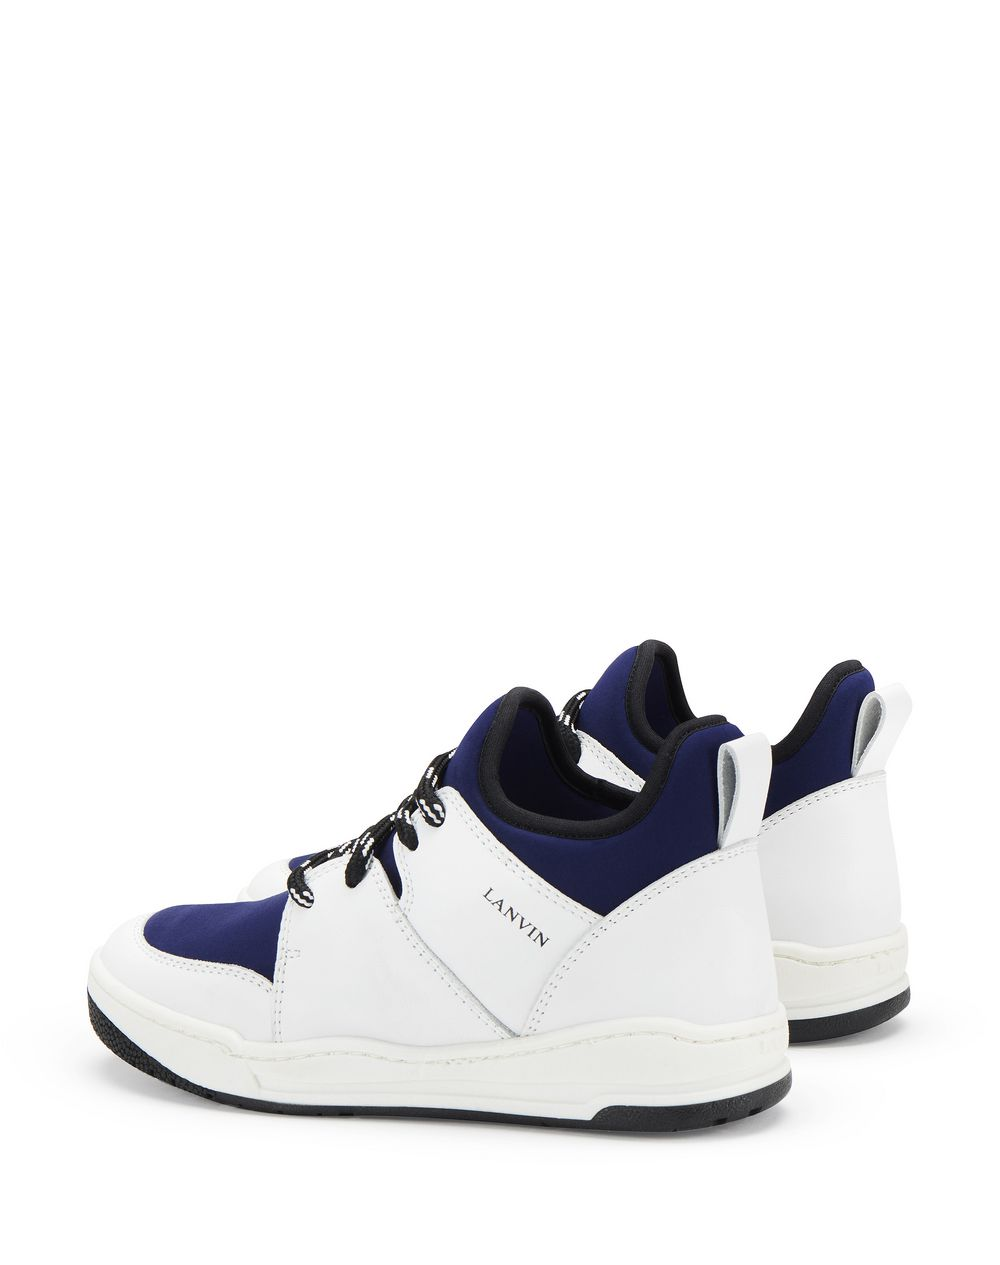 TWO-TONED MID-TOP SNEAKERS     - Lanvin